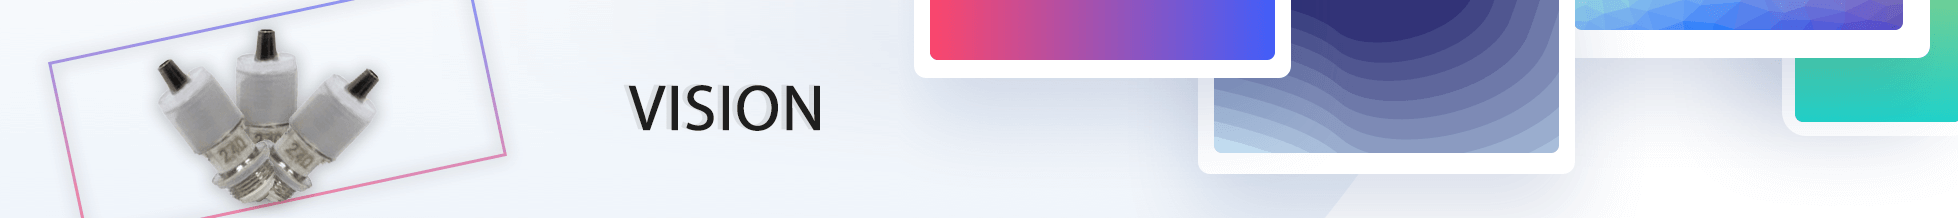 vision-category-banner.png